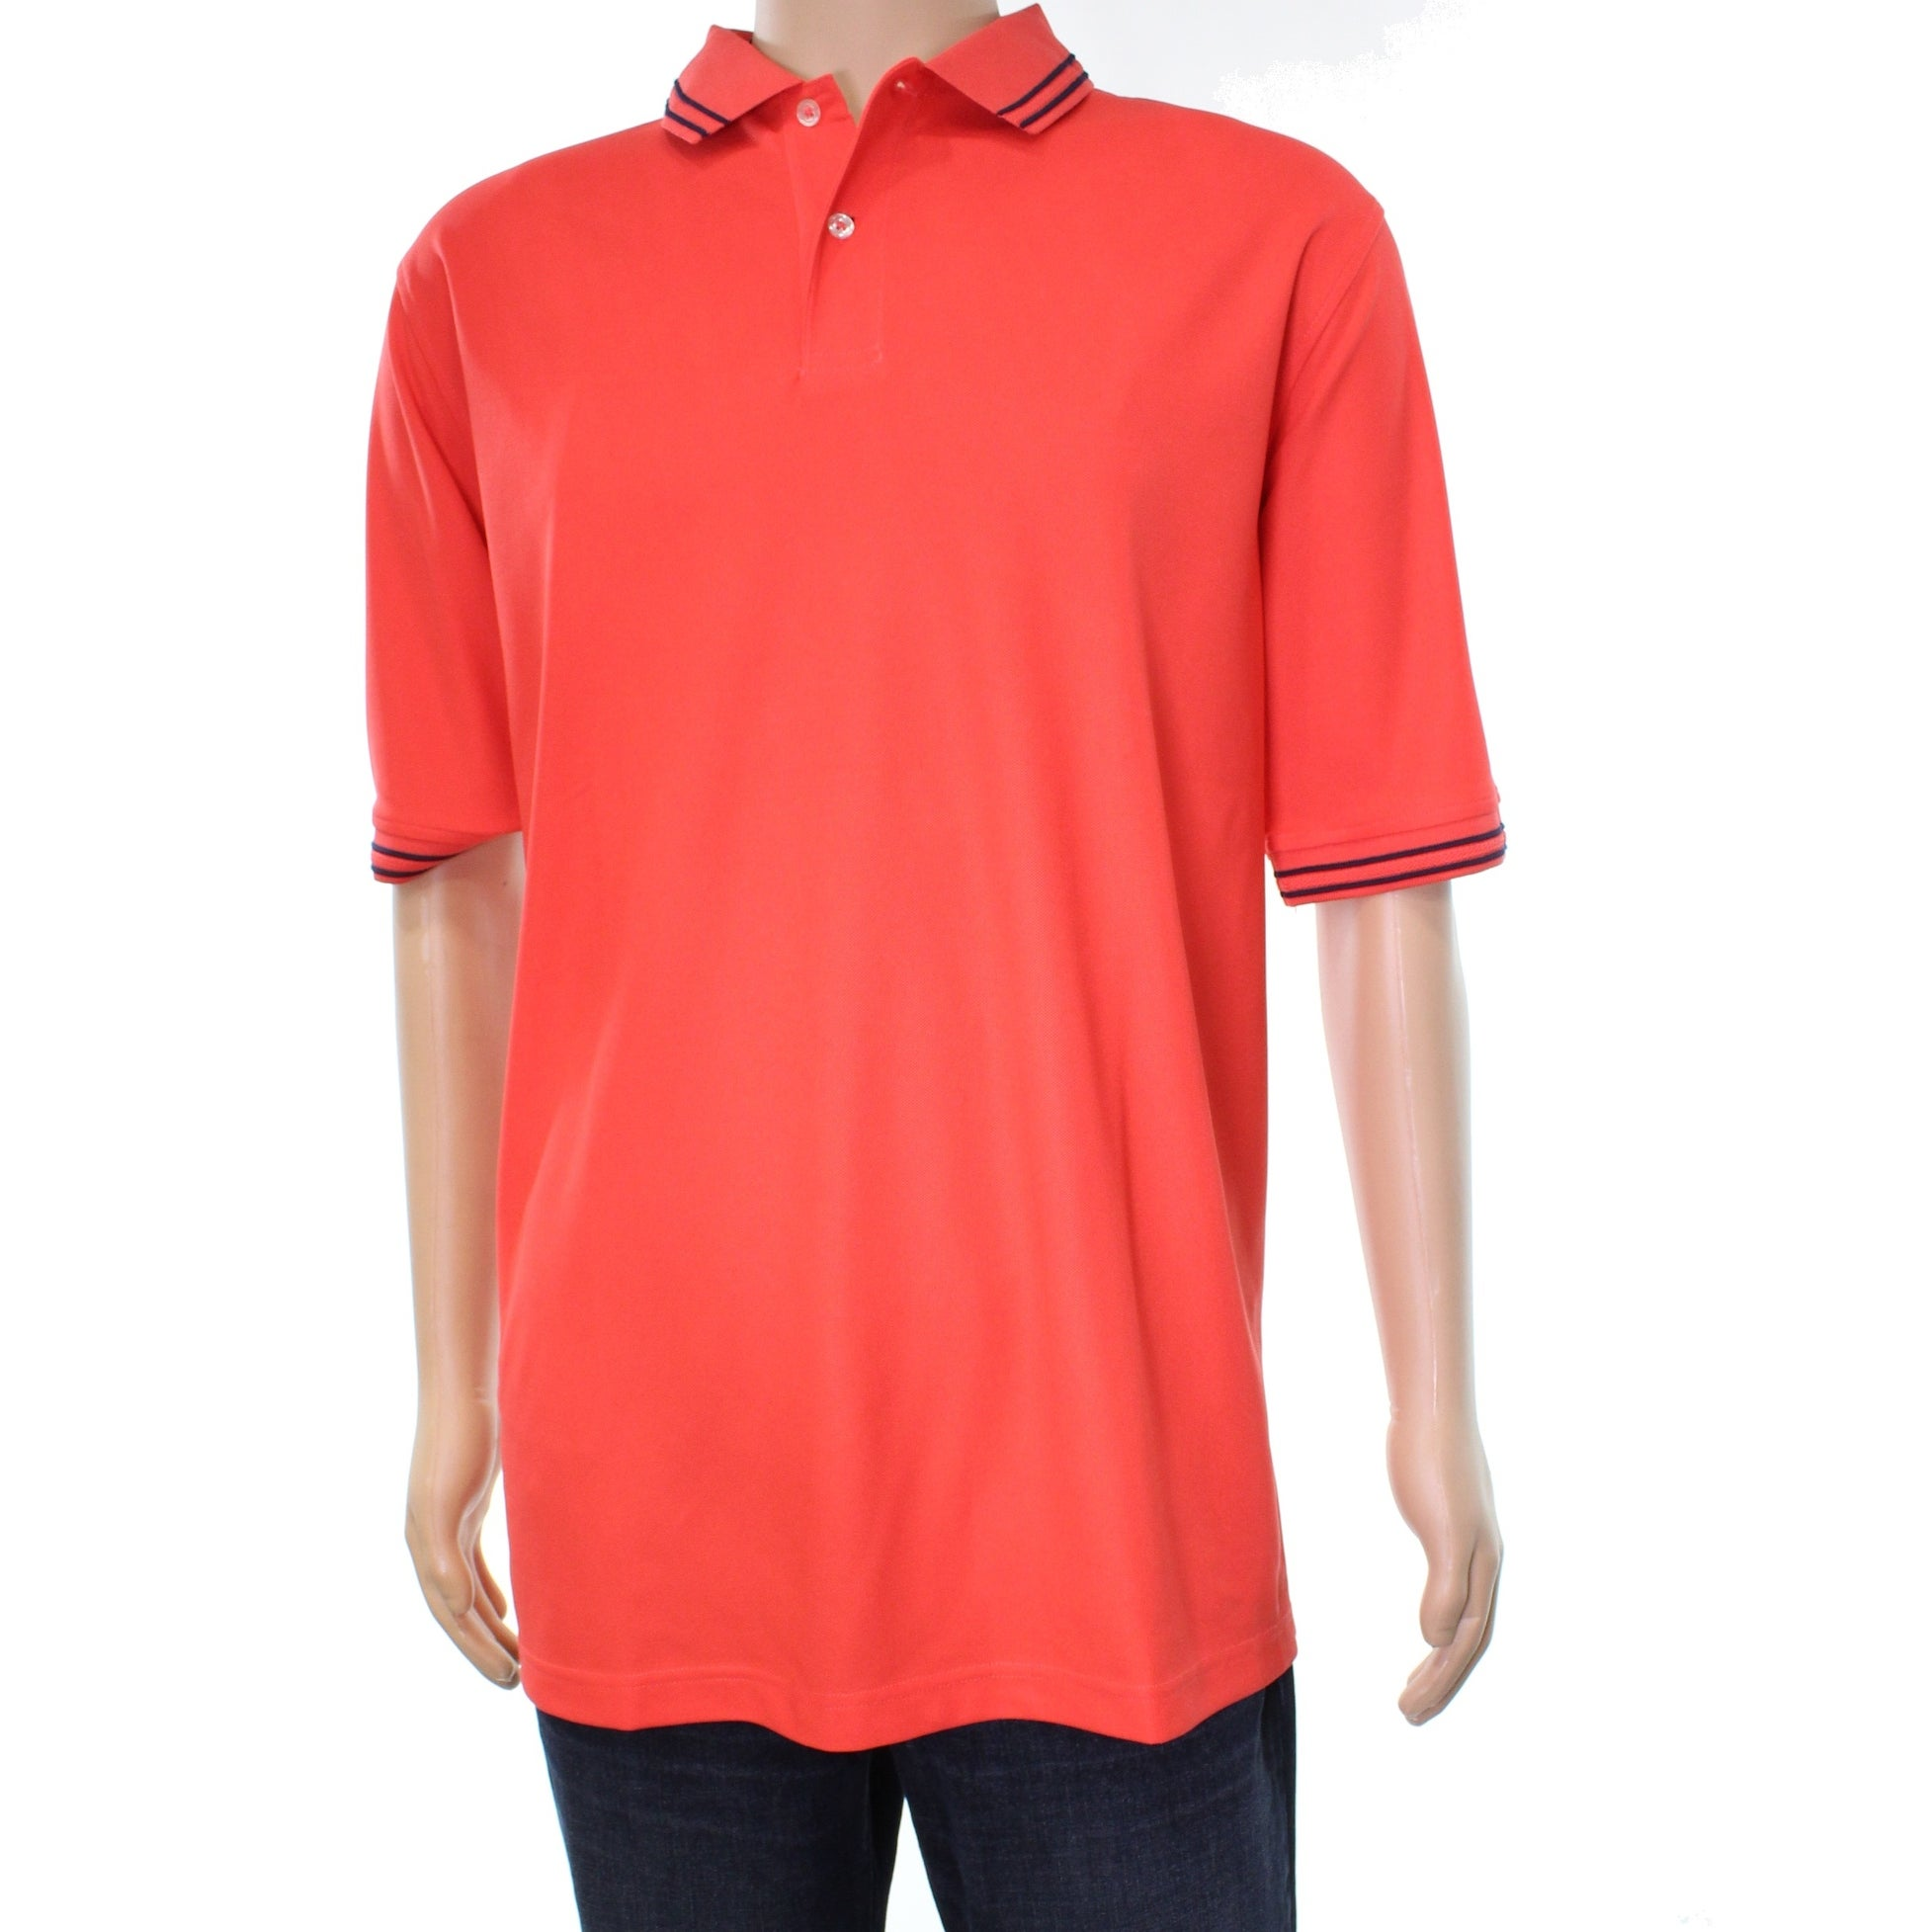 Shop Club Room New Orange Lipstick Coral Mens Size 3xlt Polo Rugby